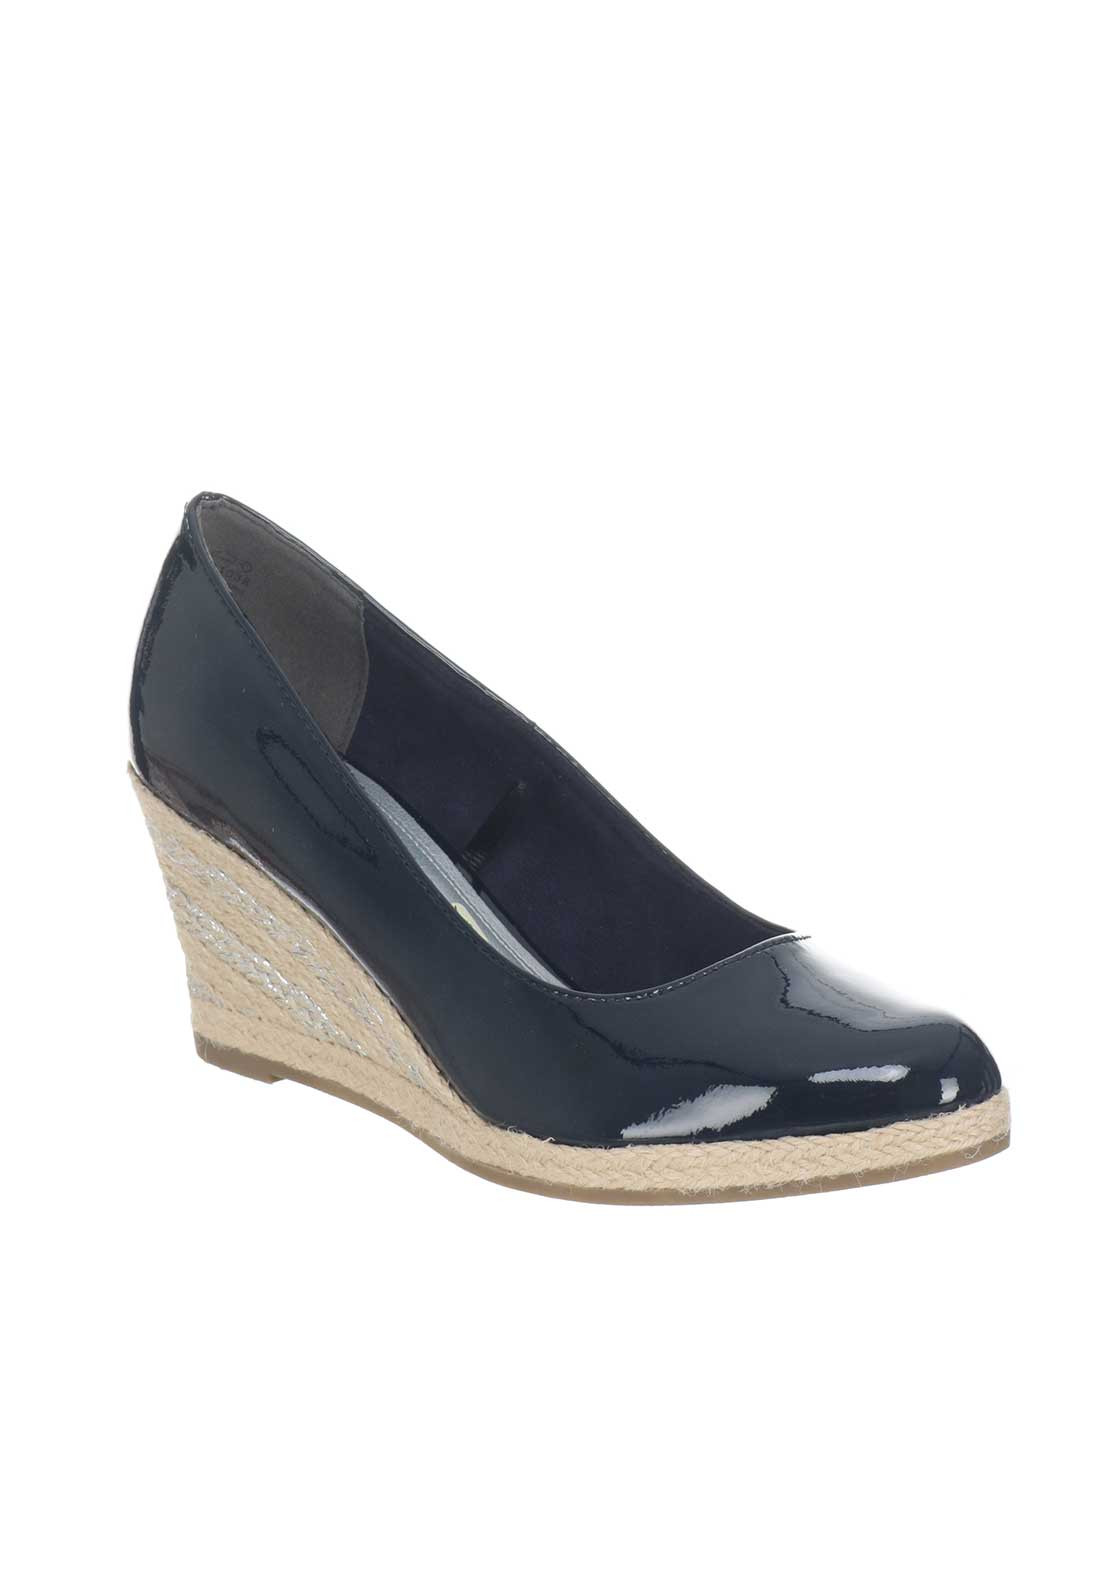 Marco Tozzi Patent Espadrille Wedged Shoes, Navy